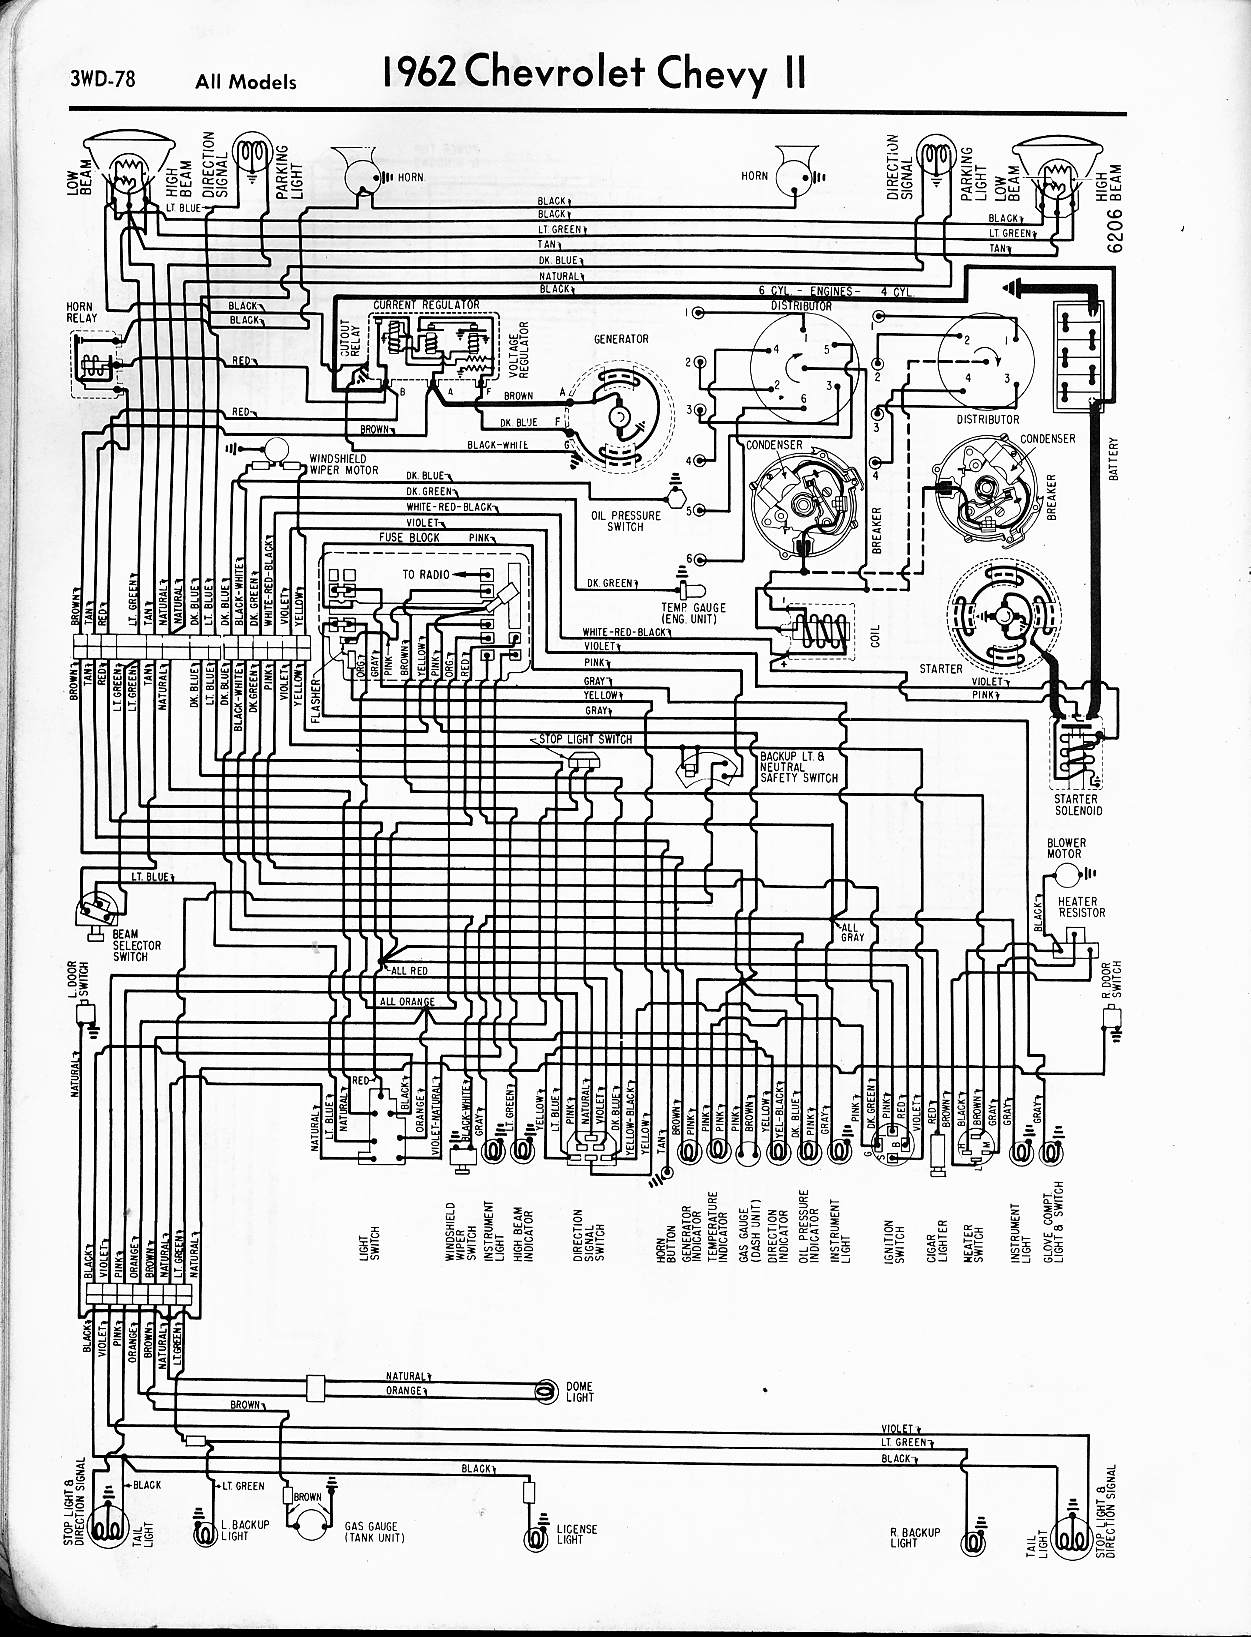 MWireChev62_3WD 078 57 65 chevy wiring diagrams 1962 impala wiring diagram at honlapkeszites.co